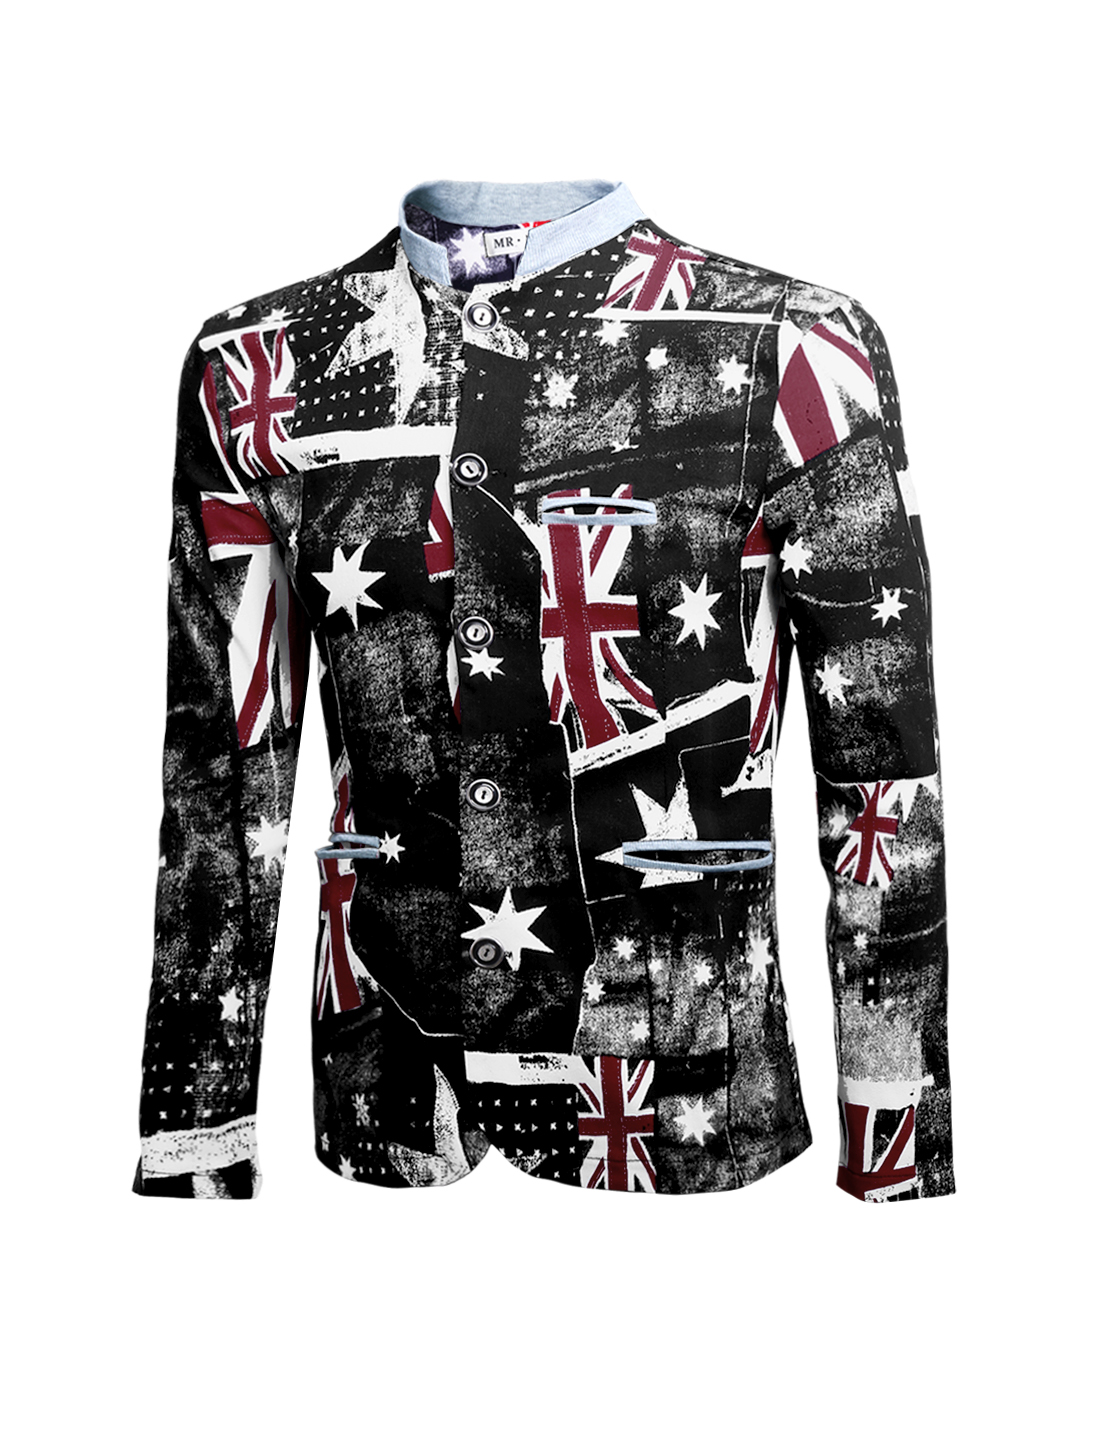 Men Union Jack Flag Pattern Pockets Front Button Down Jacket Black Red M